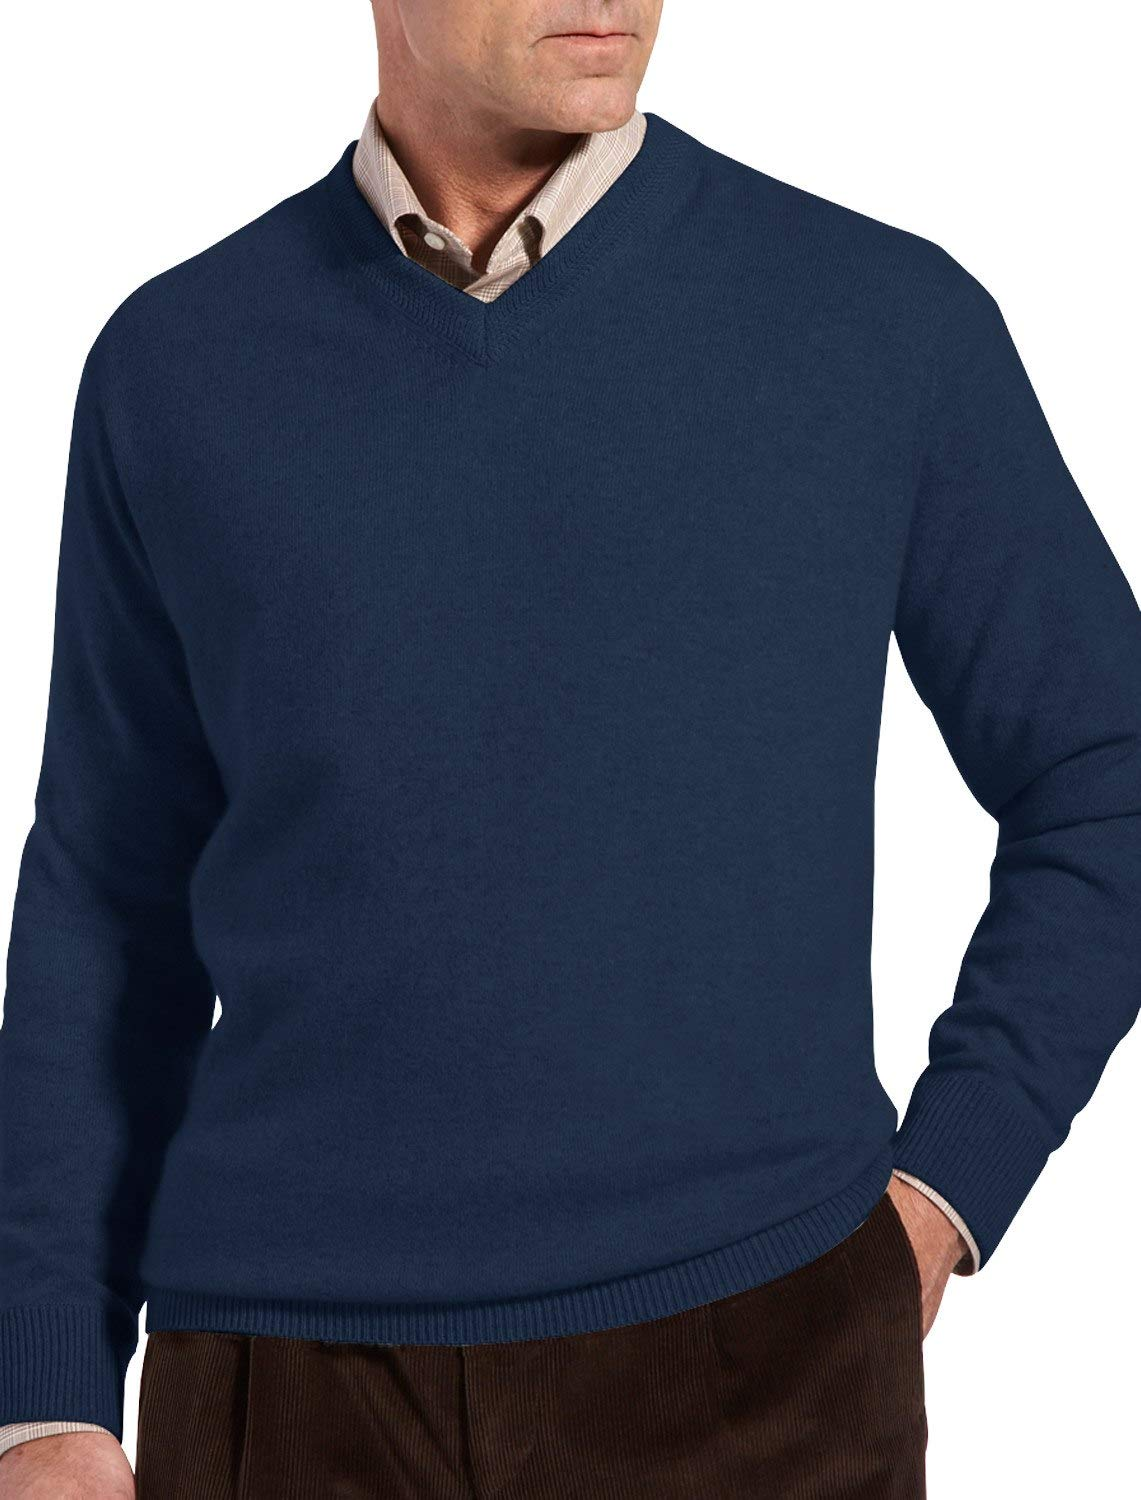 Rochester by DXL Big and Tall Cashmere V-Neck Sweater (3XL, Navy)